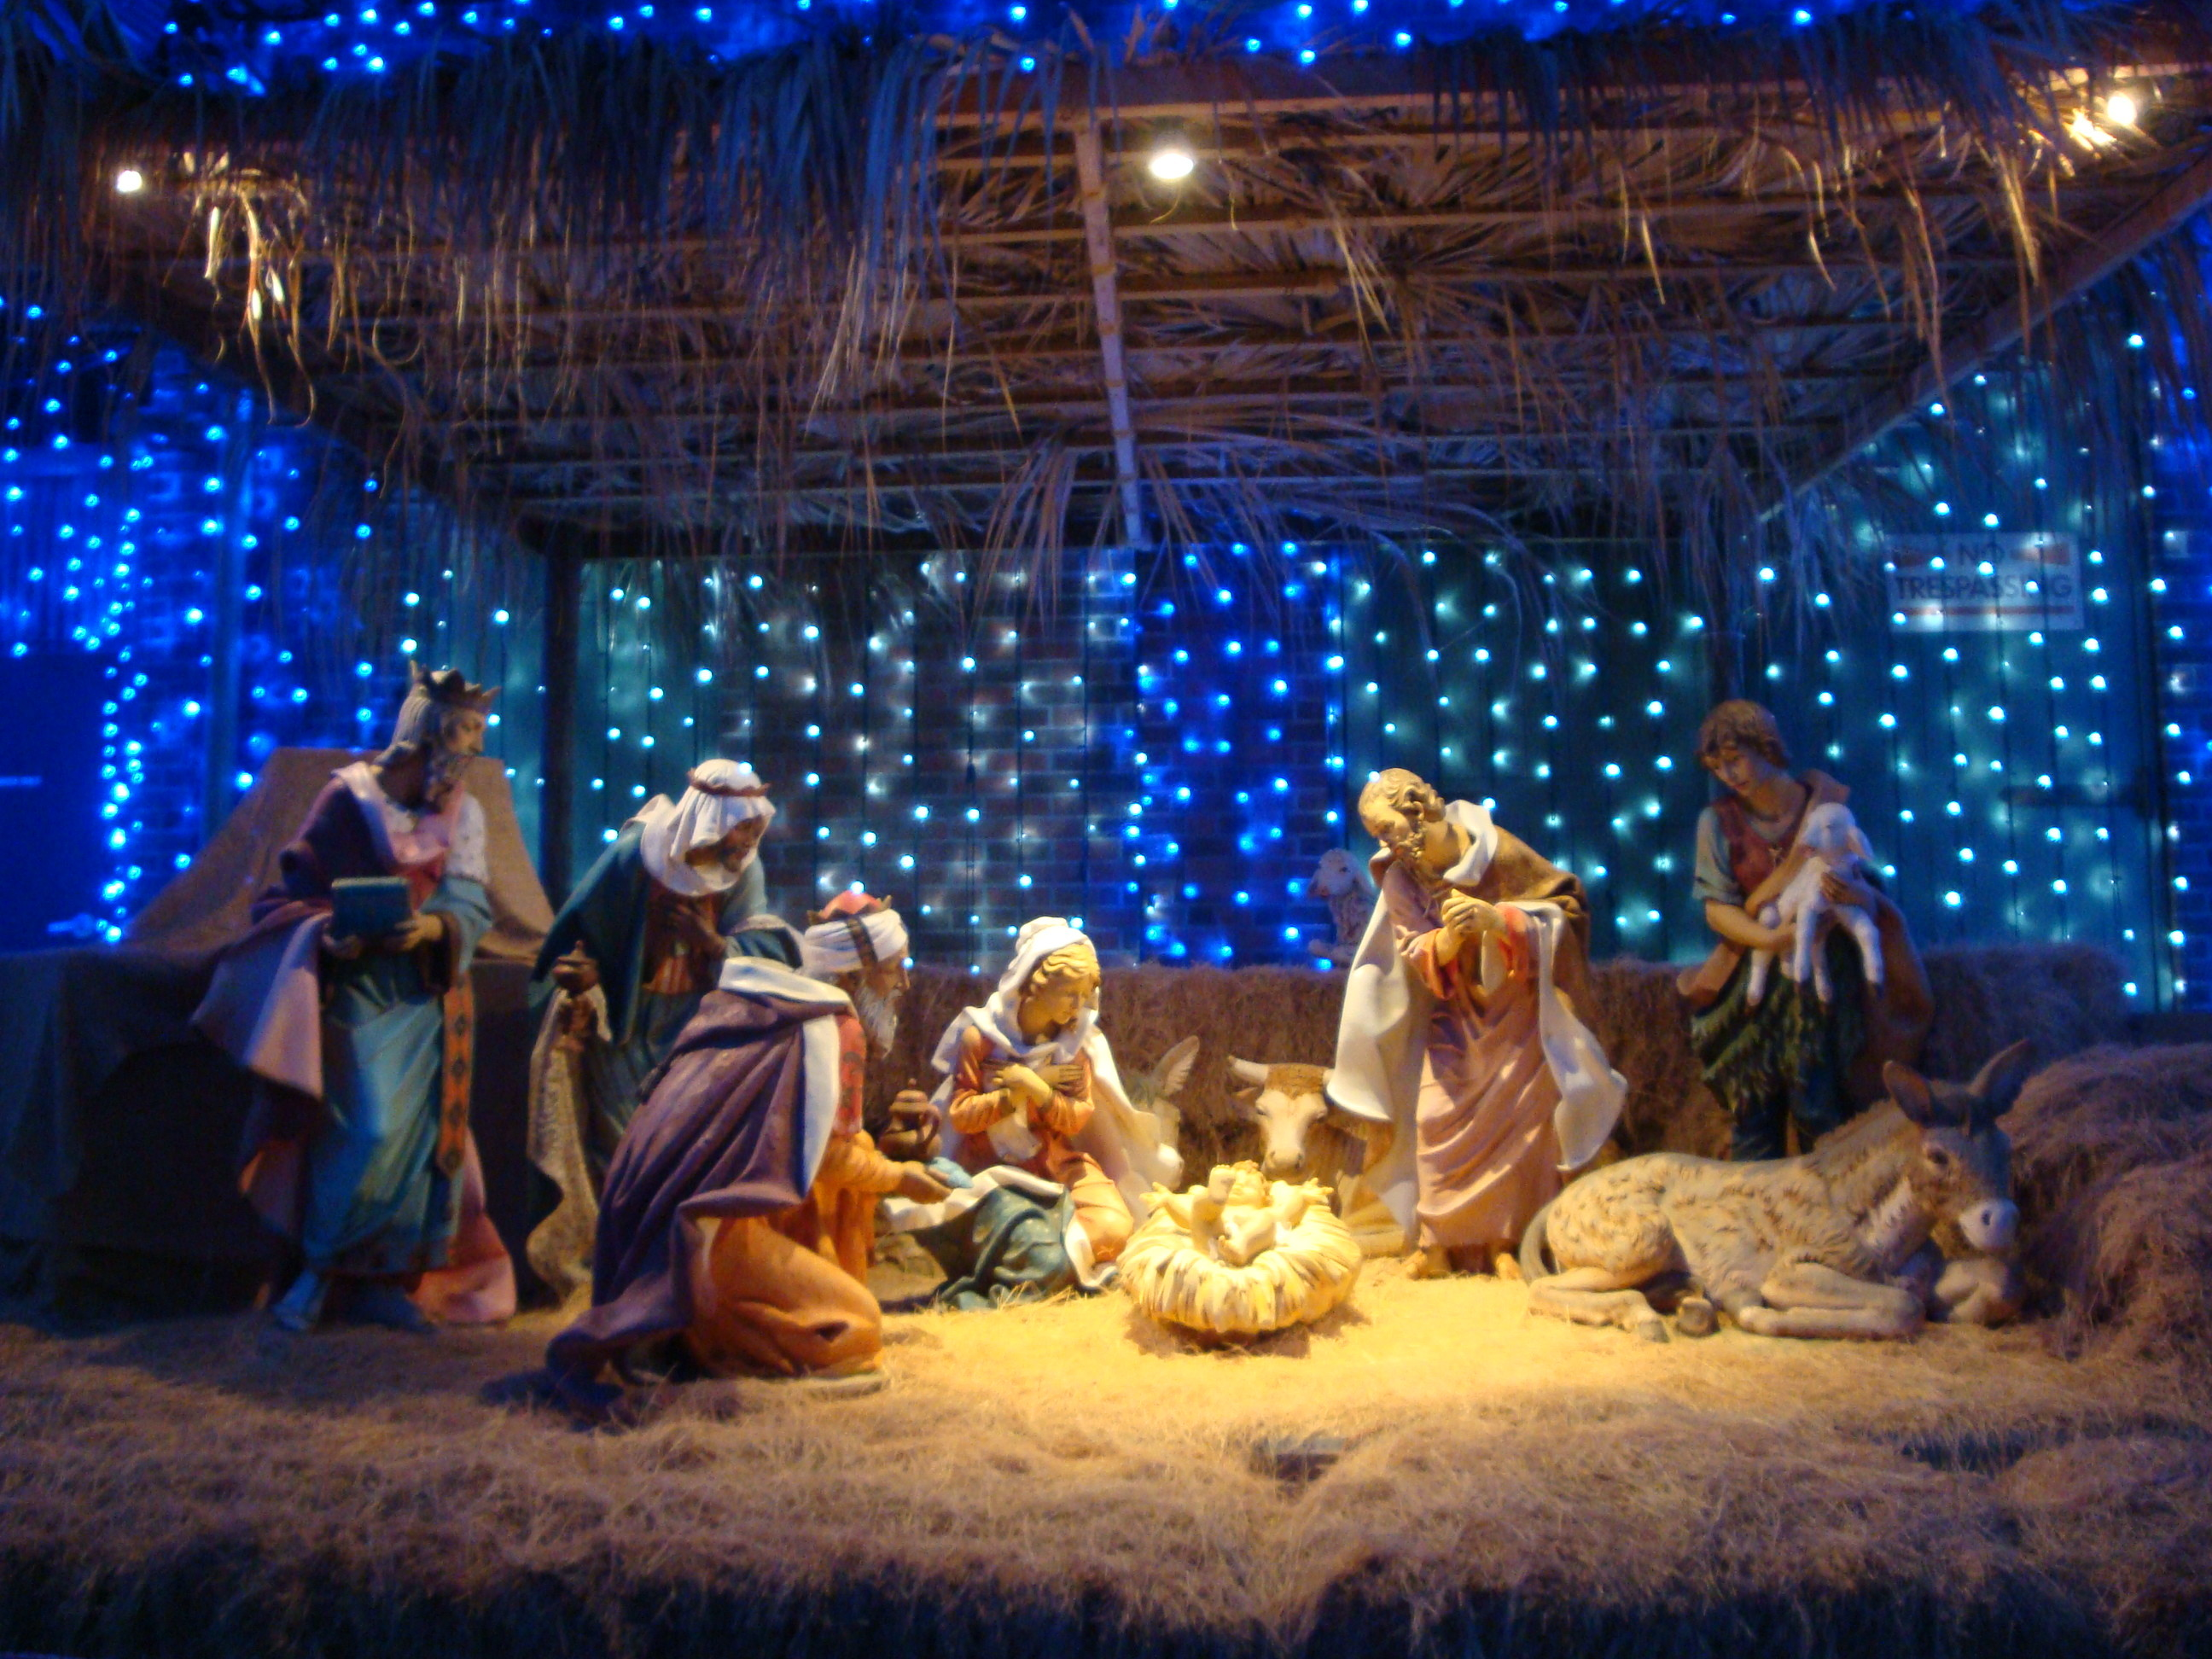 nativity scene desktop wallpaper  u00b7 u2460 wallpapertag